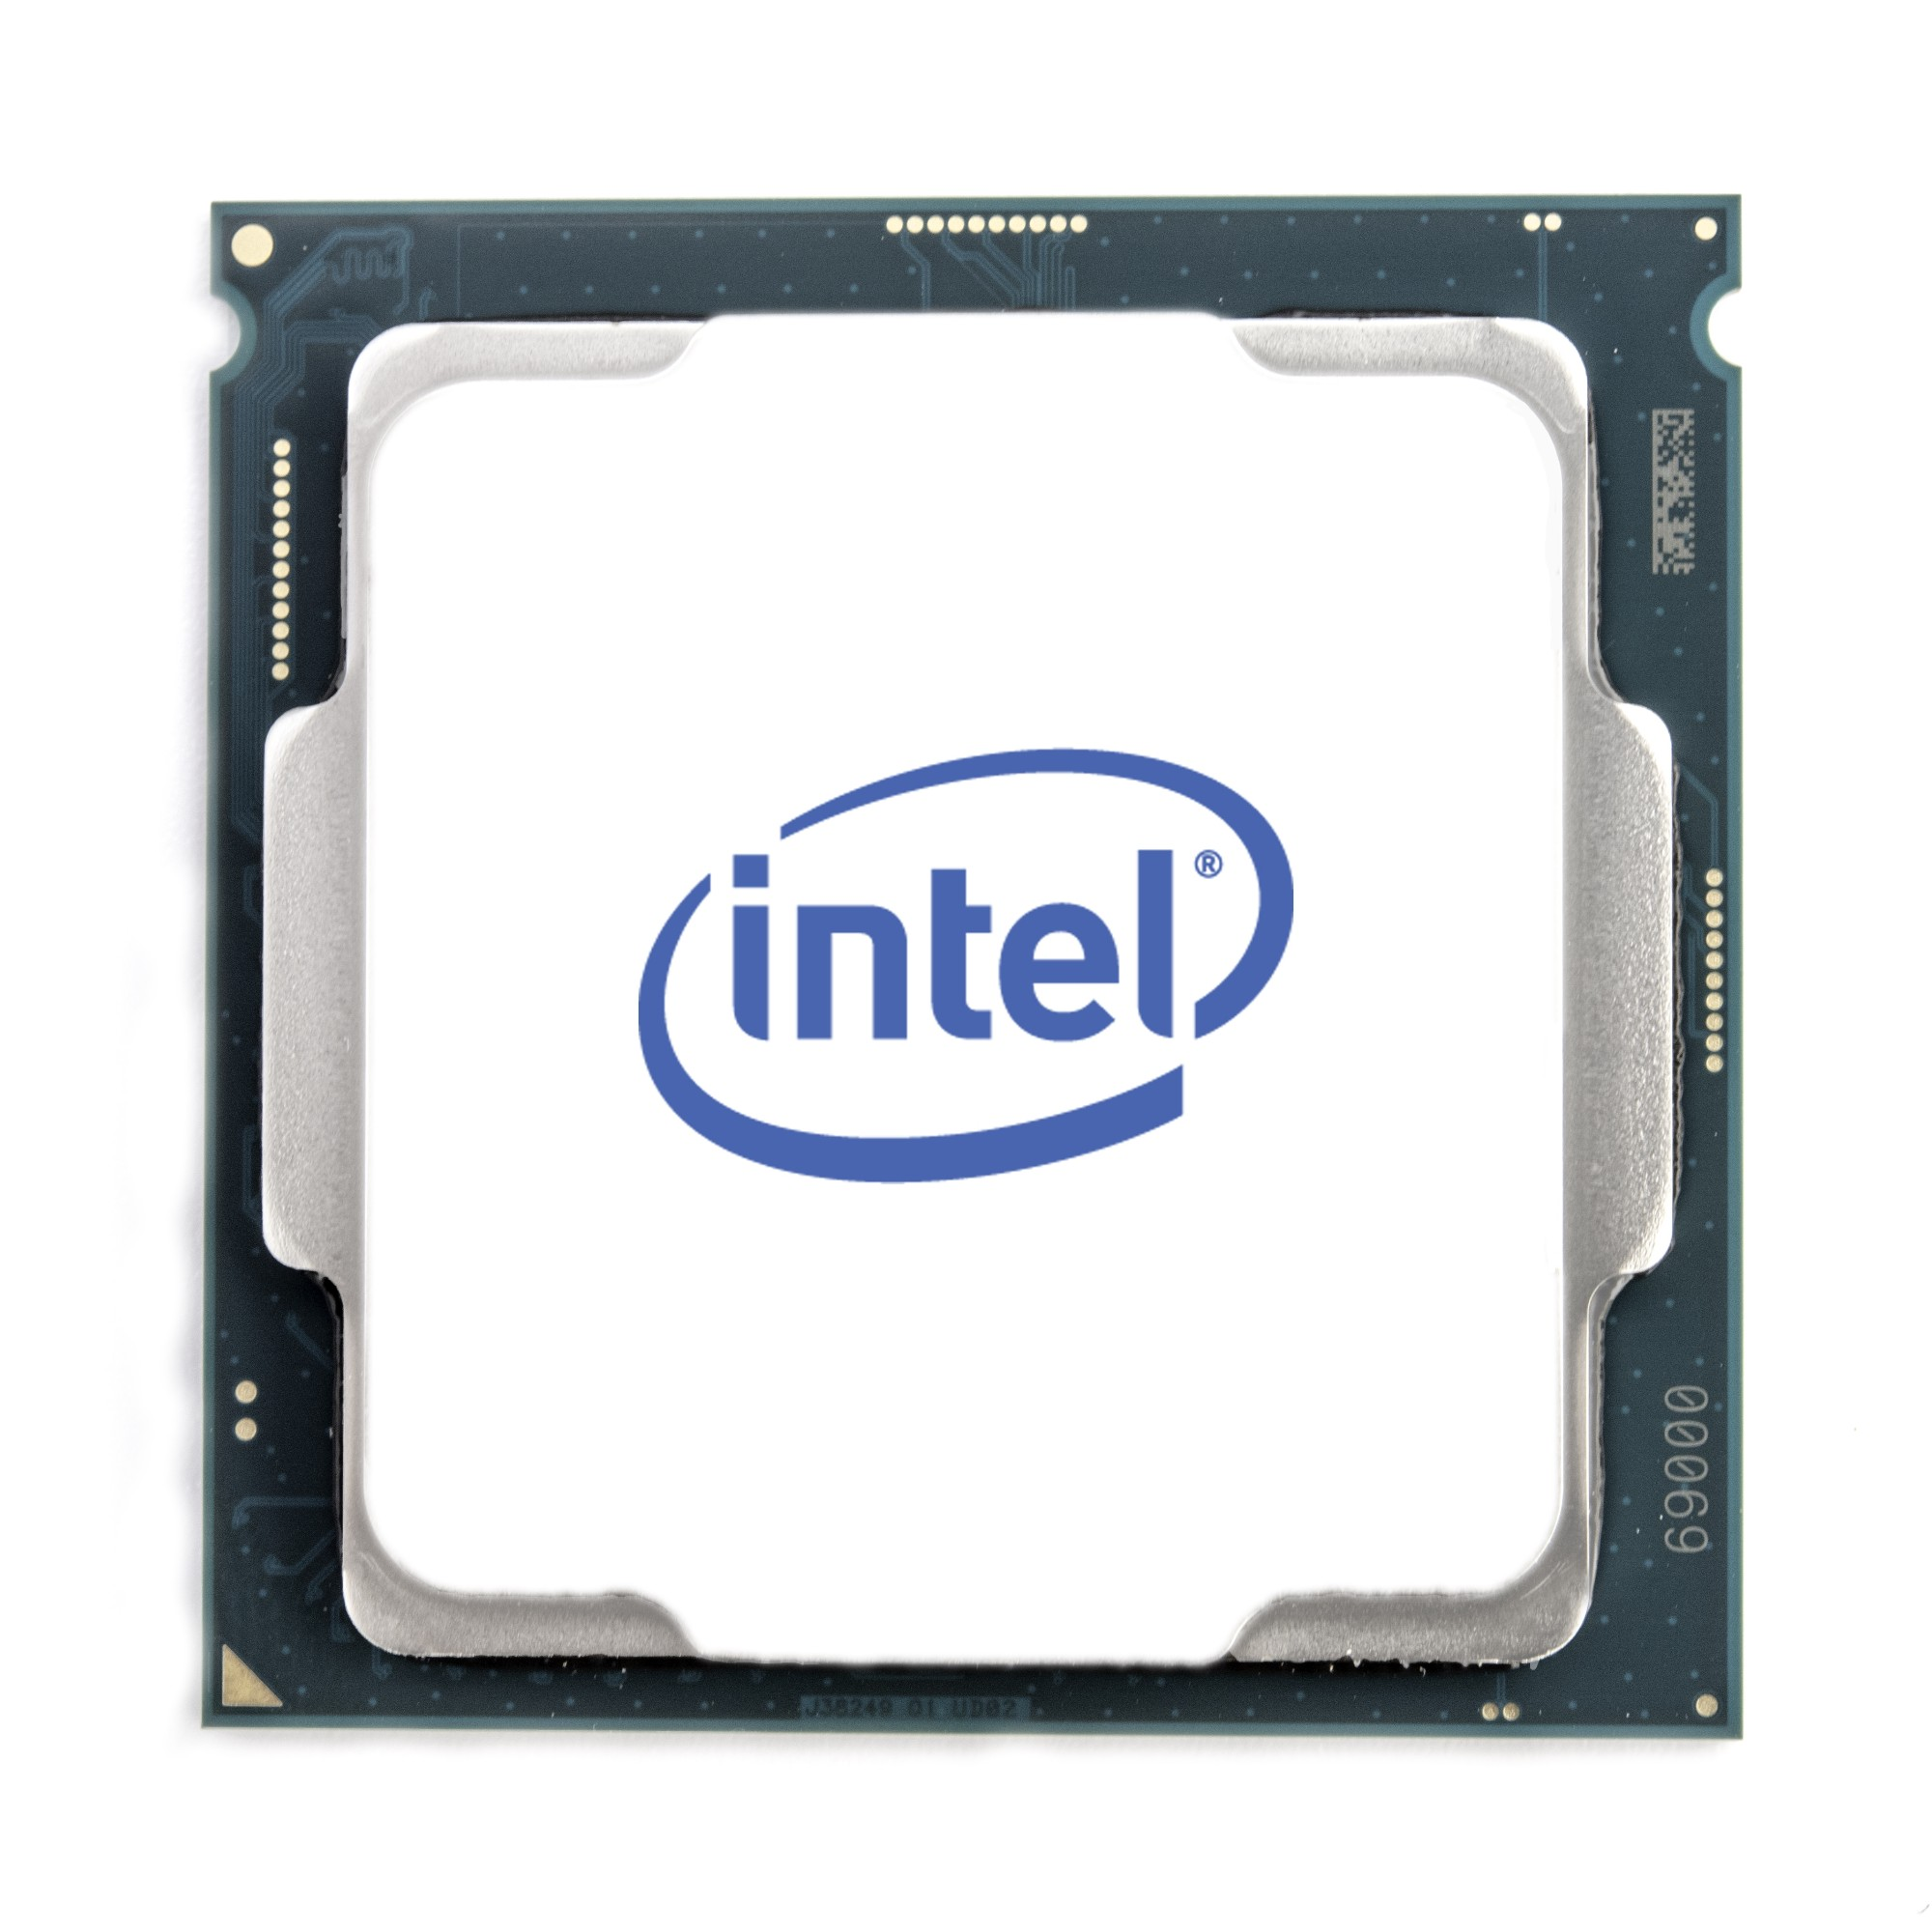 Intel Core i3-8100 processor 3.6 GHz 6 MB Smart Cache